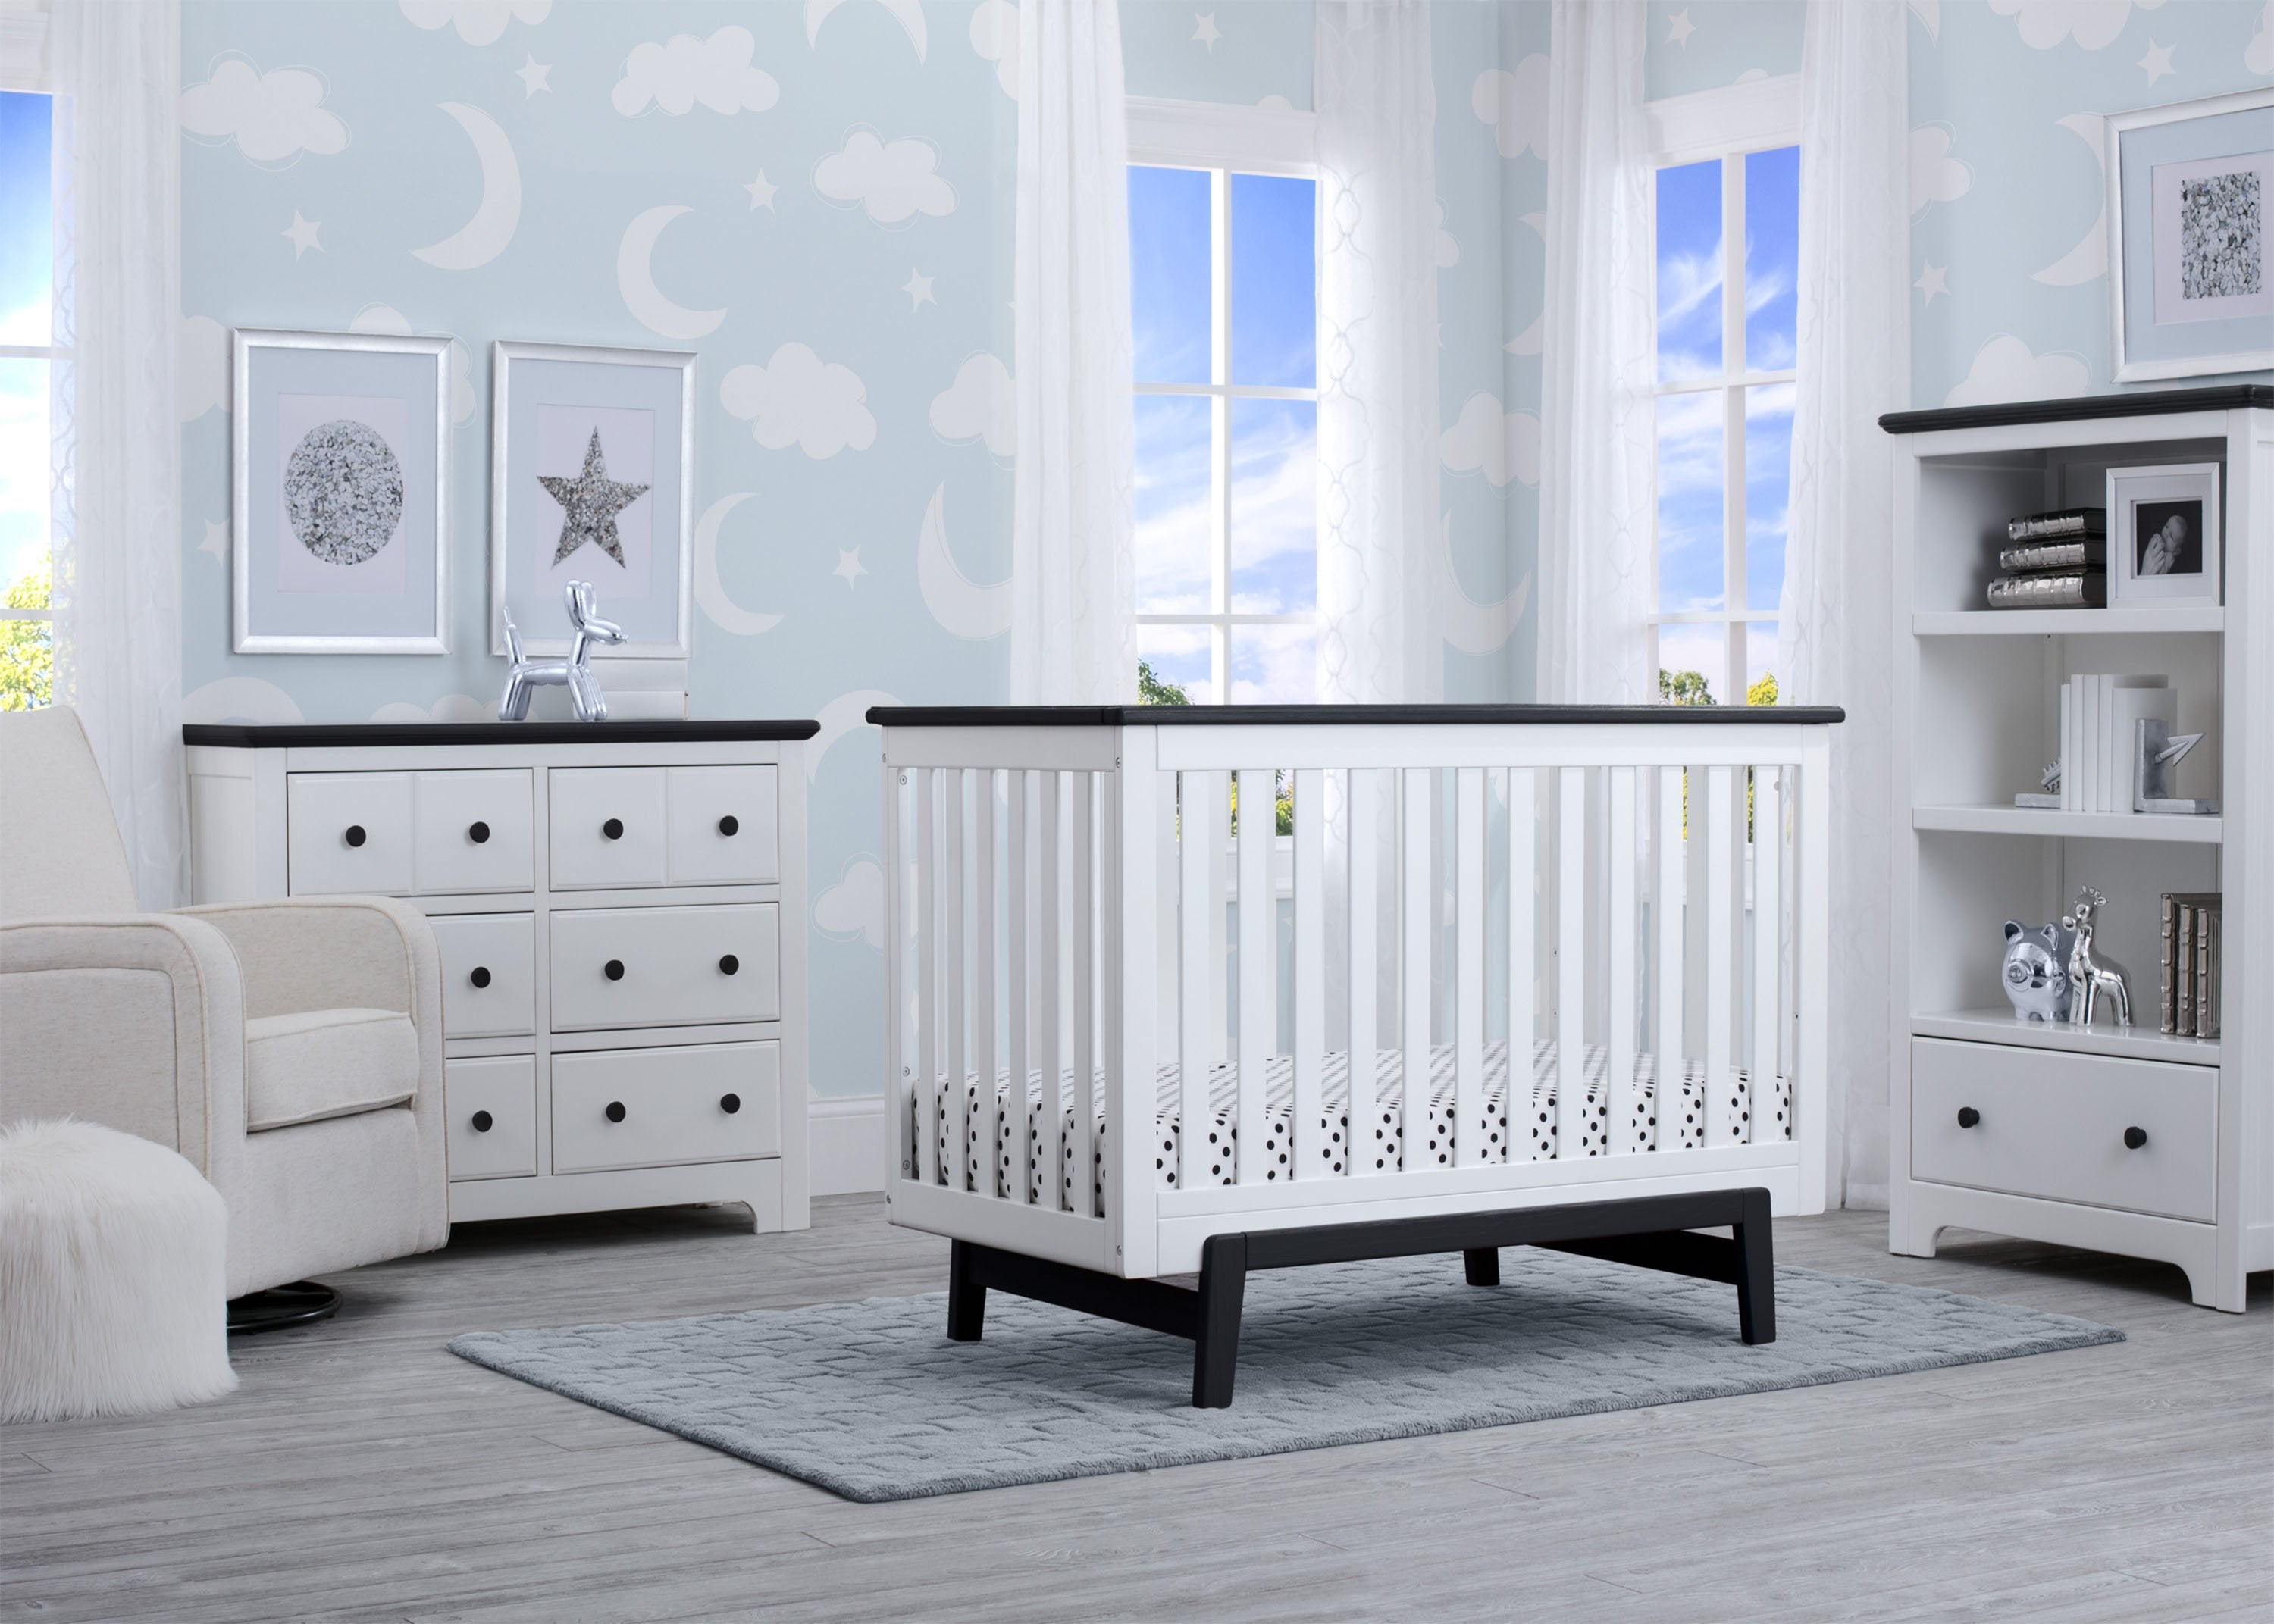 cozy table lamp best design bed size furniture diy sale hemnes at grey armchair for bedroom baby ikea drawer tall dresser books distressed wall amazon full malm of walmart target dressers frame